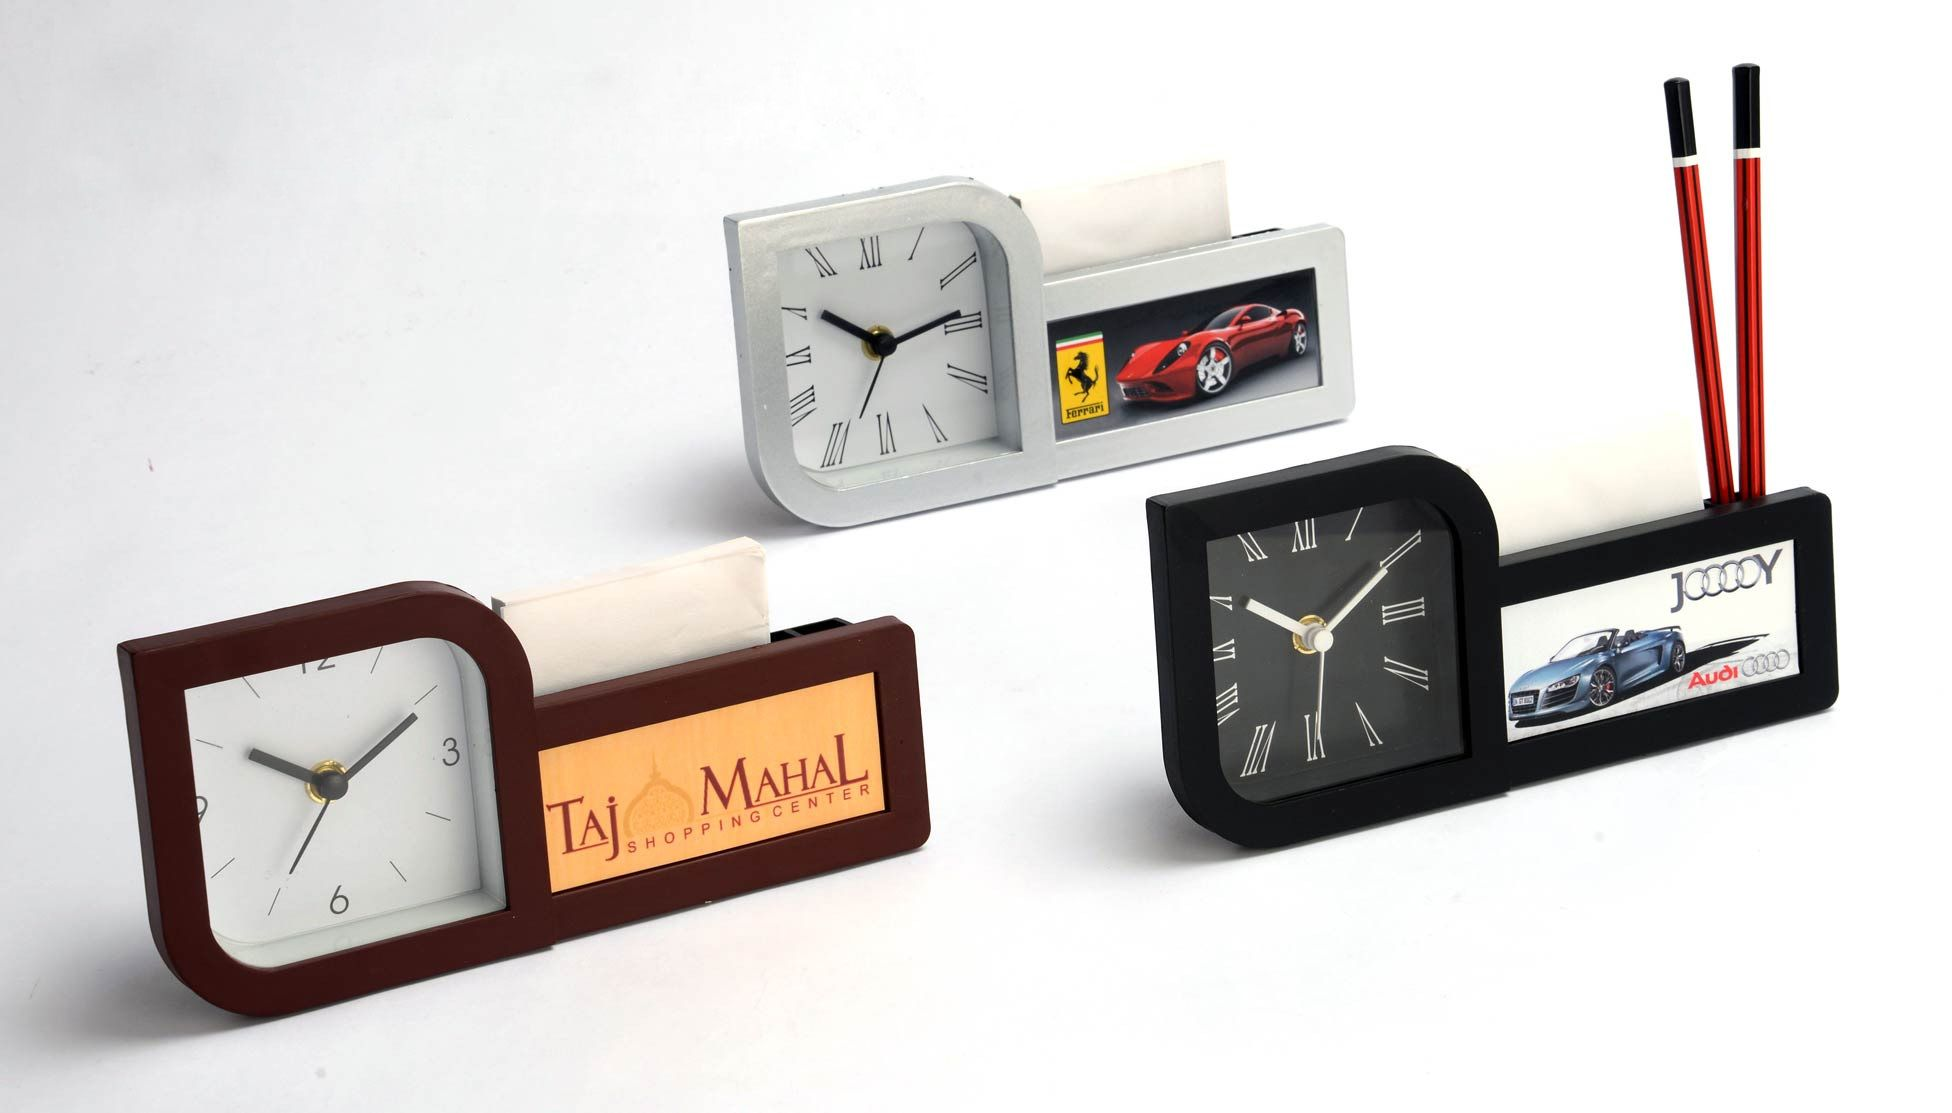 Power Plus Clock With Pad And Pen Holder (With Writing Pad) (Branding Included) (Moq: 200 Pcs) A116